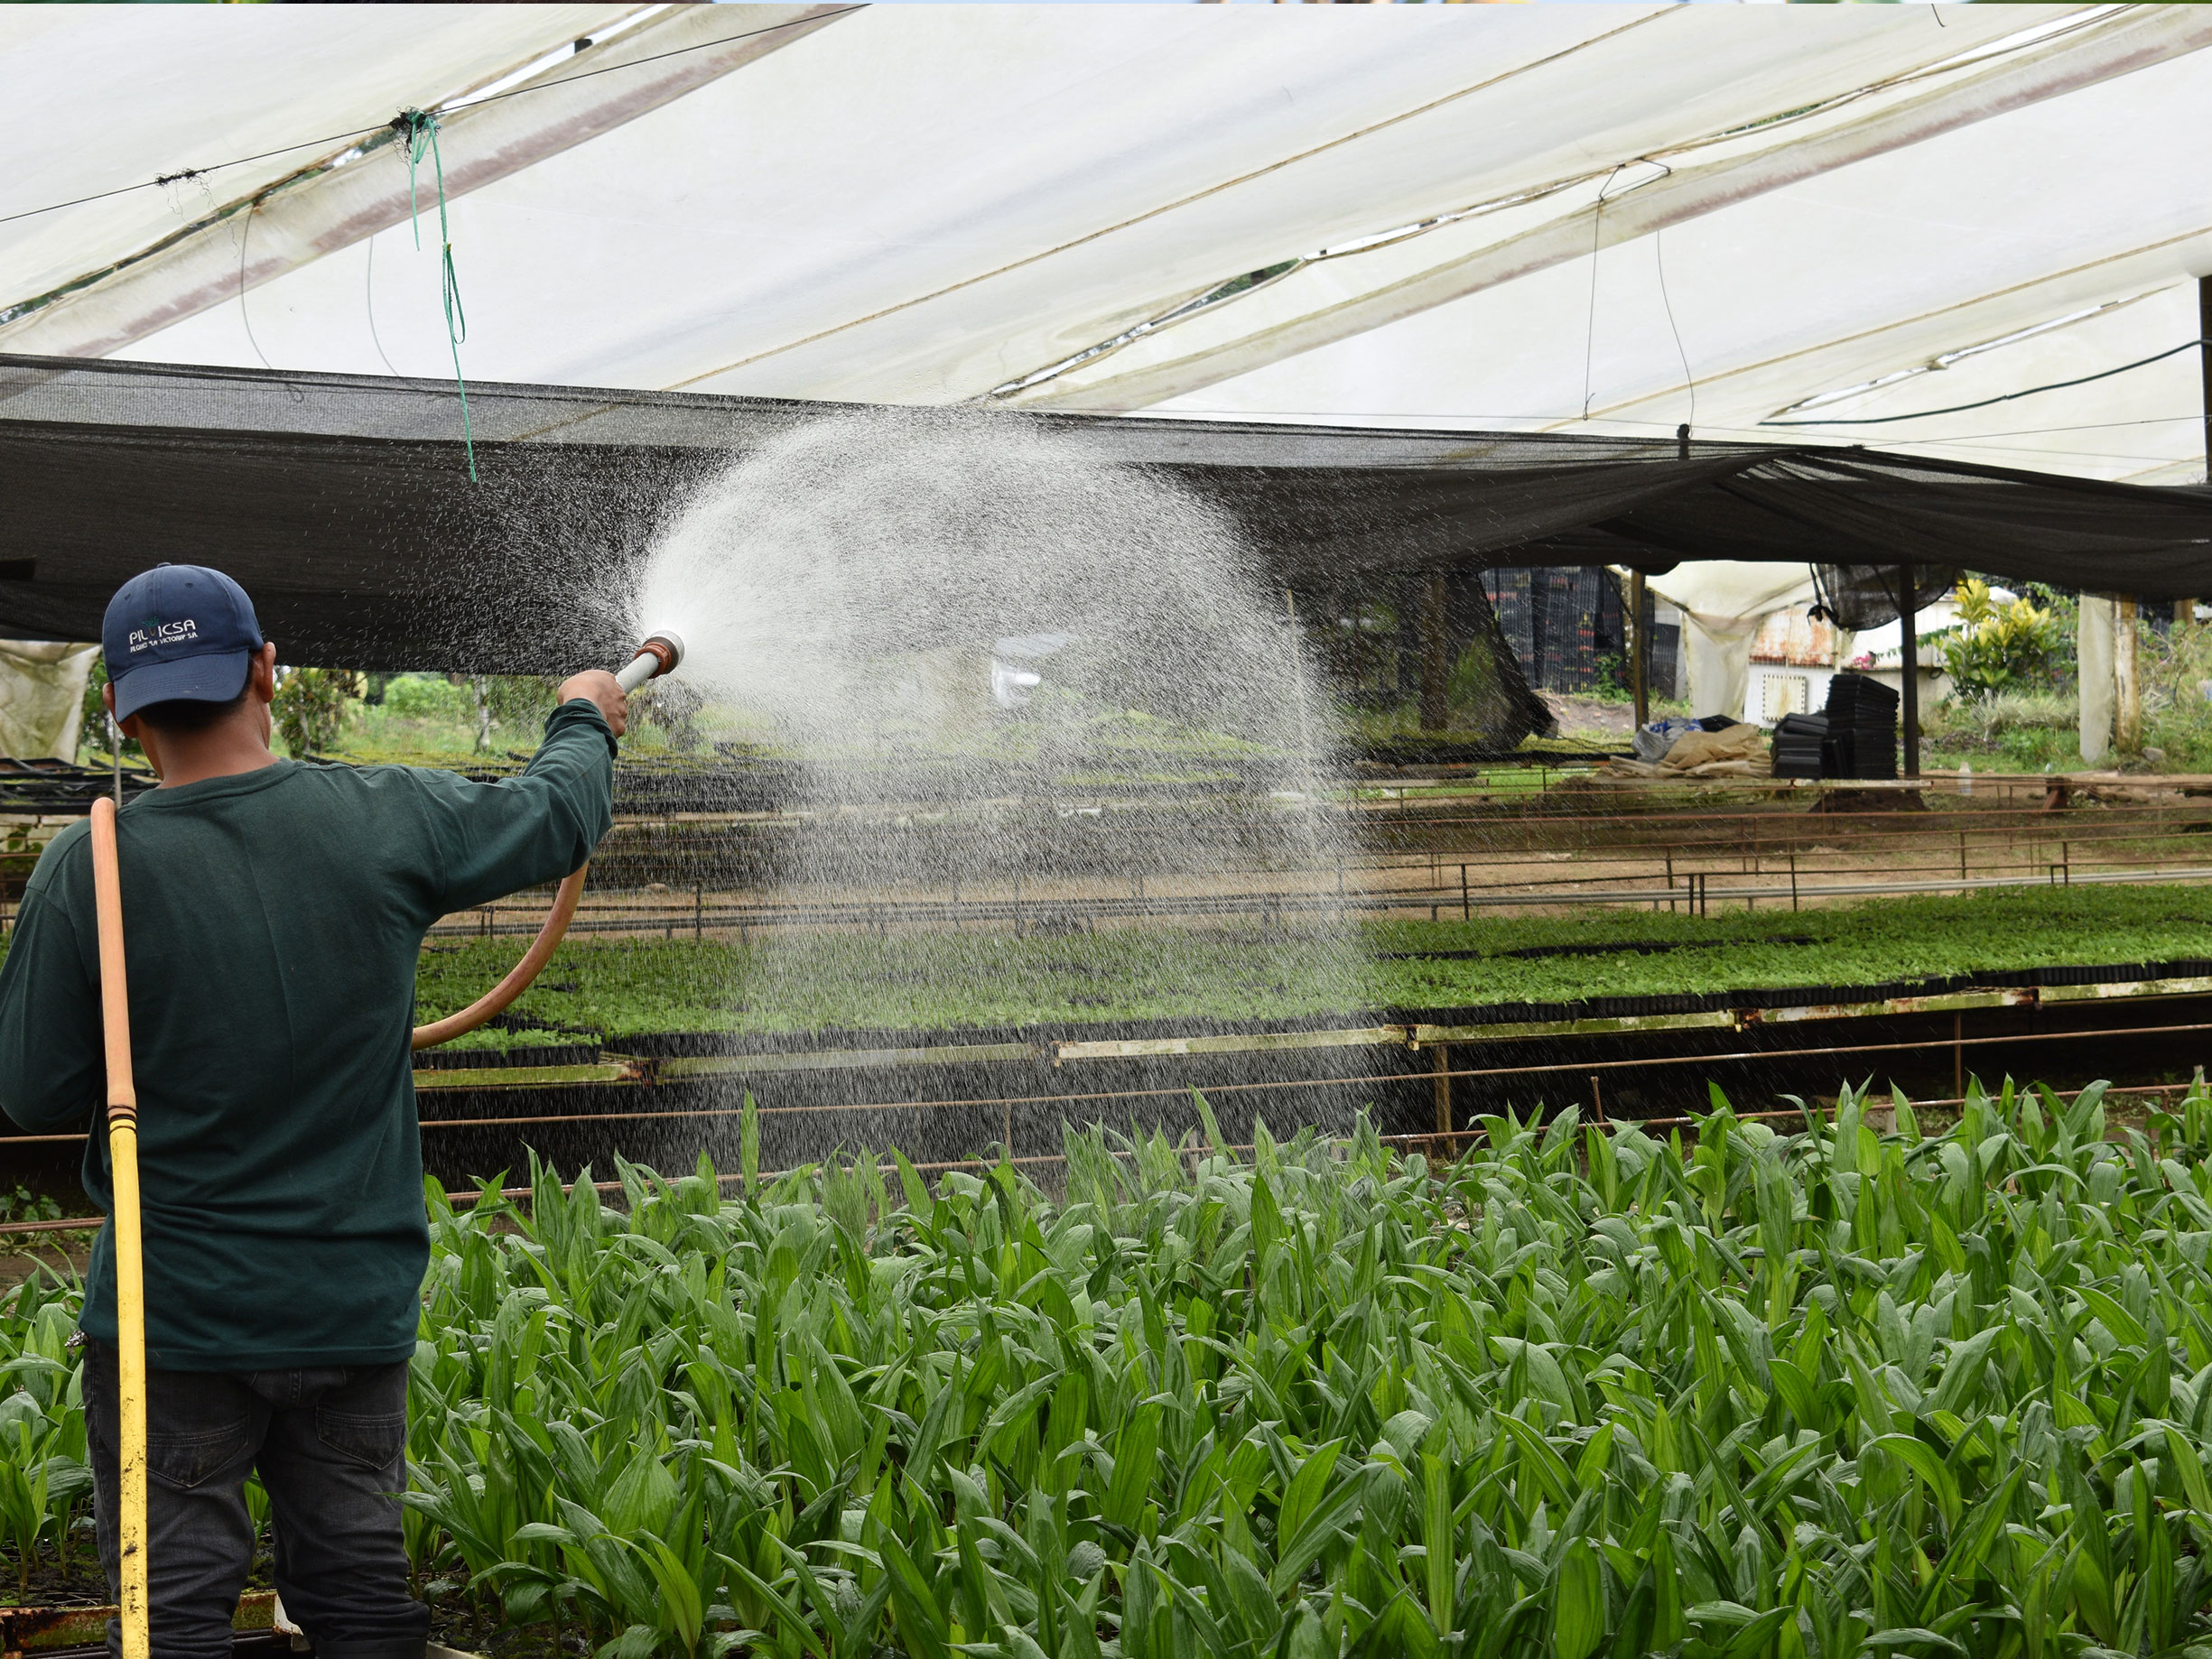 Watering organic seedlings for smallholder farmers supported by social impact investing in Latin America